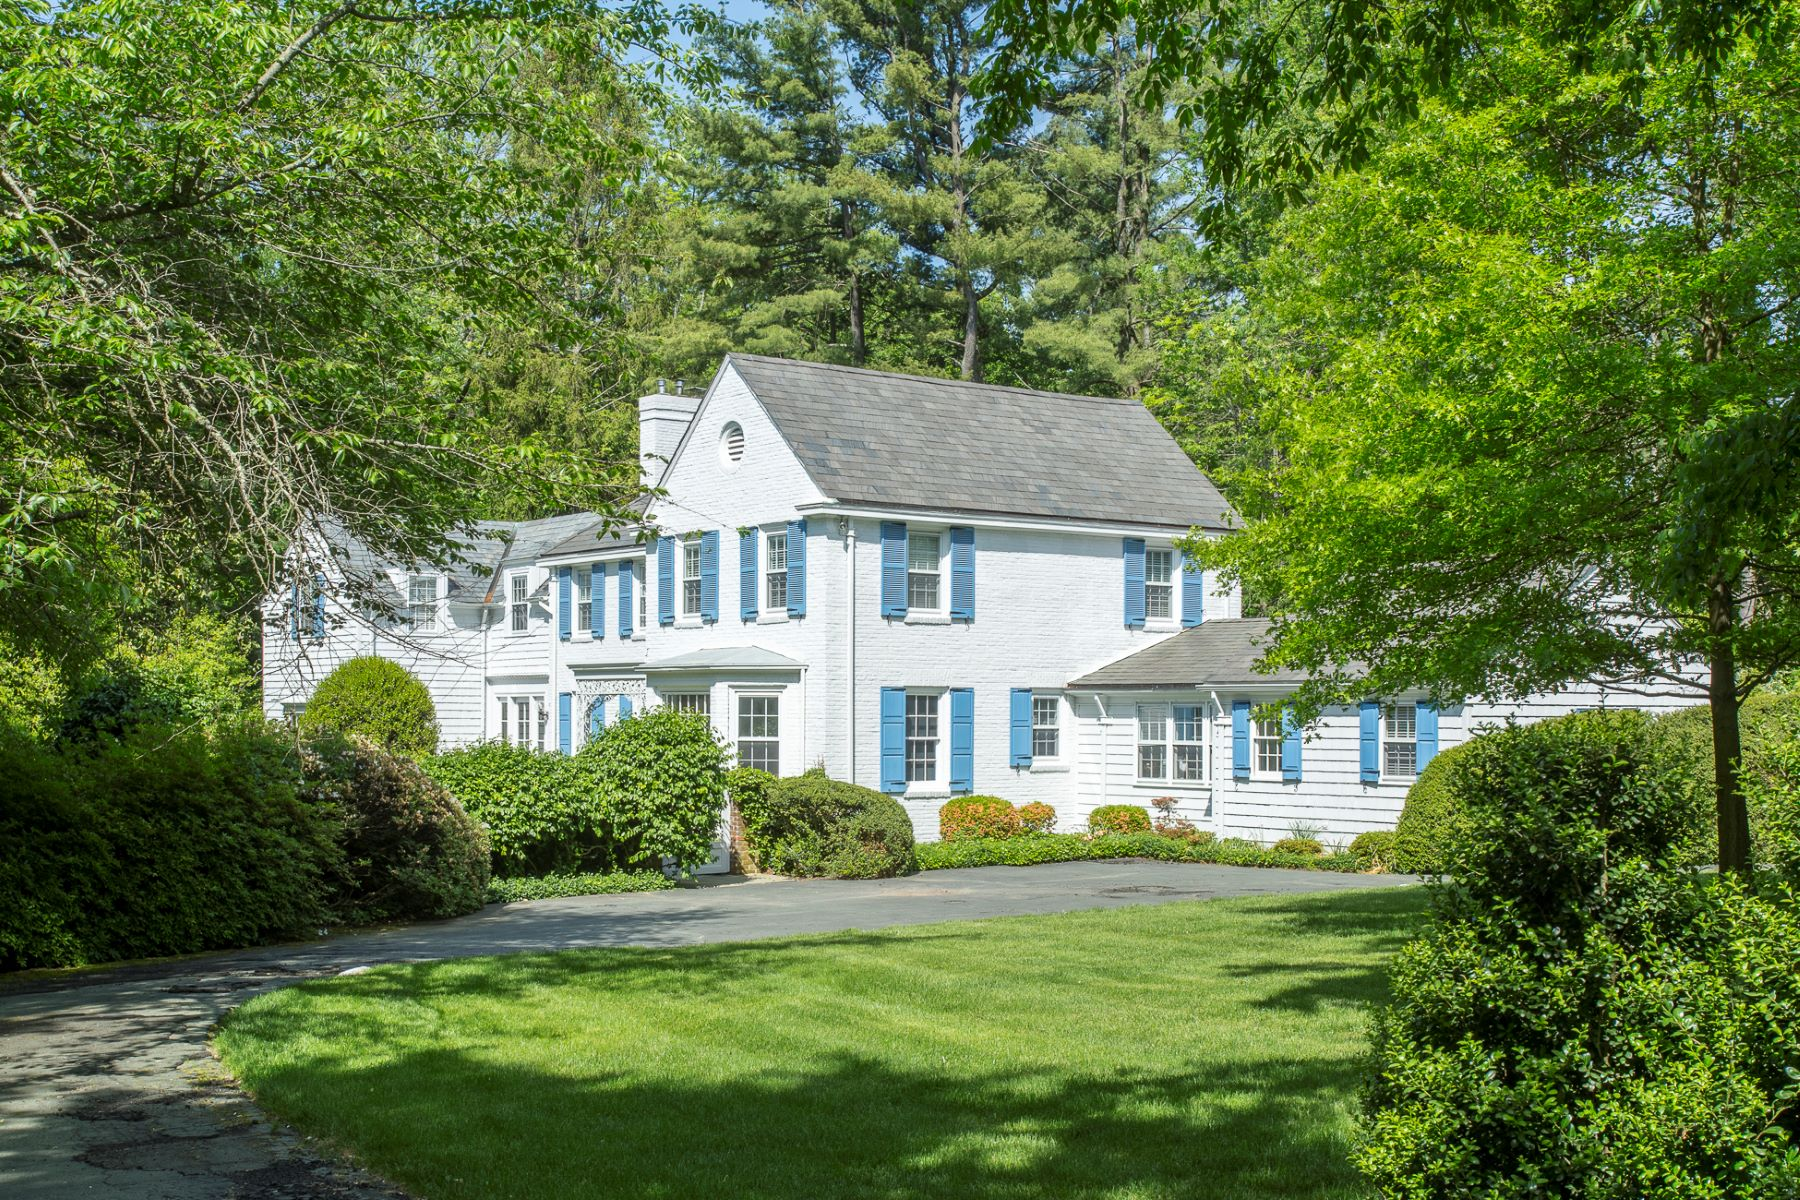 Single Family Home for Sale at Handsome Institute Colonial Encircled by Gardens 100 Battle Road Circle Princeton, New Jersey, 08540 United States